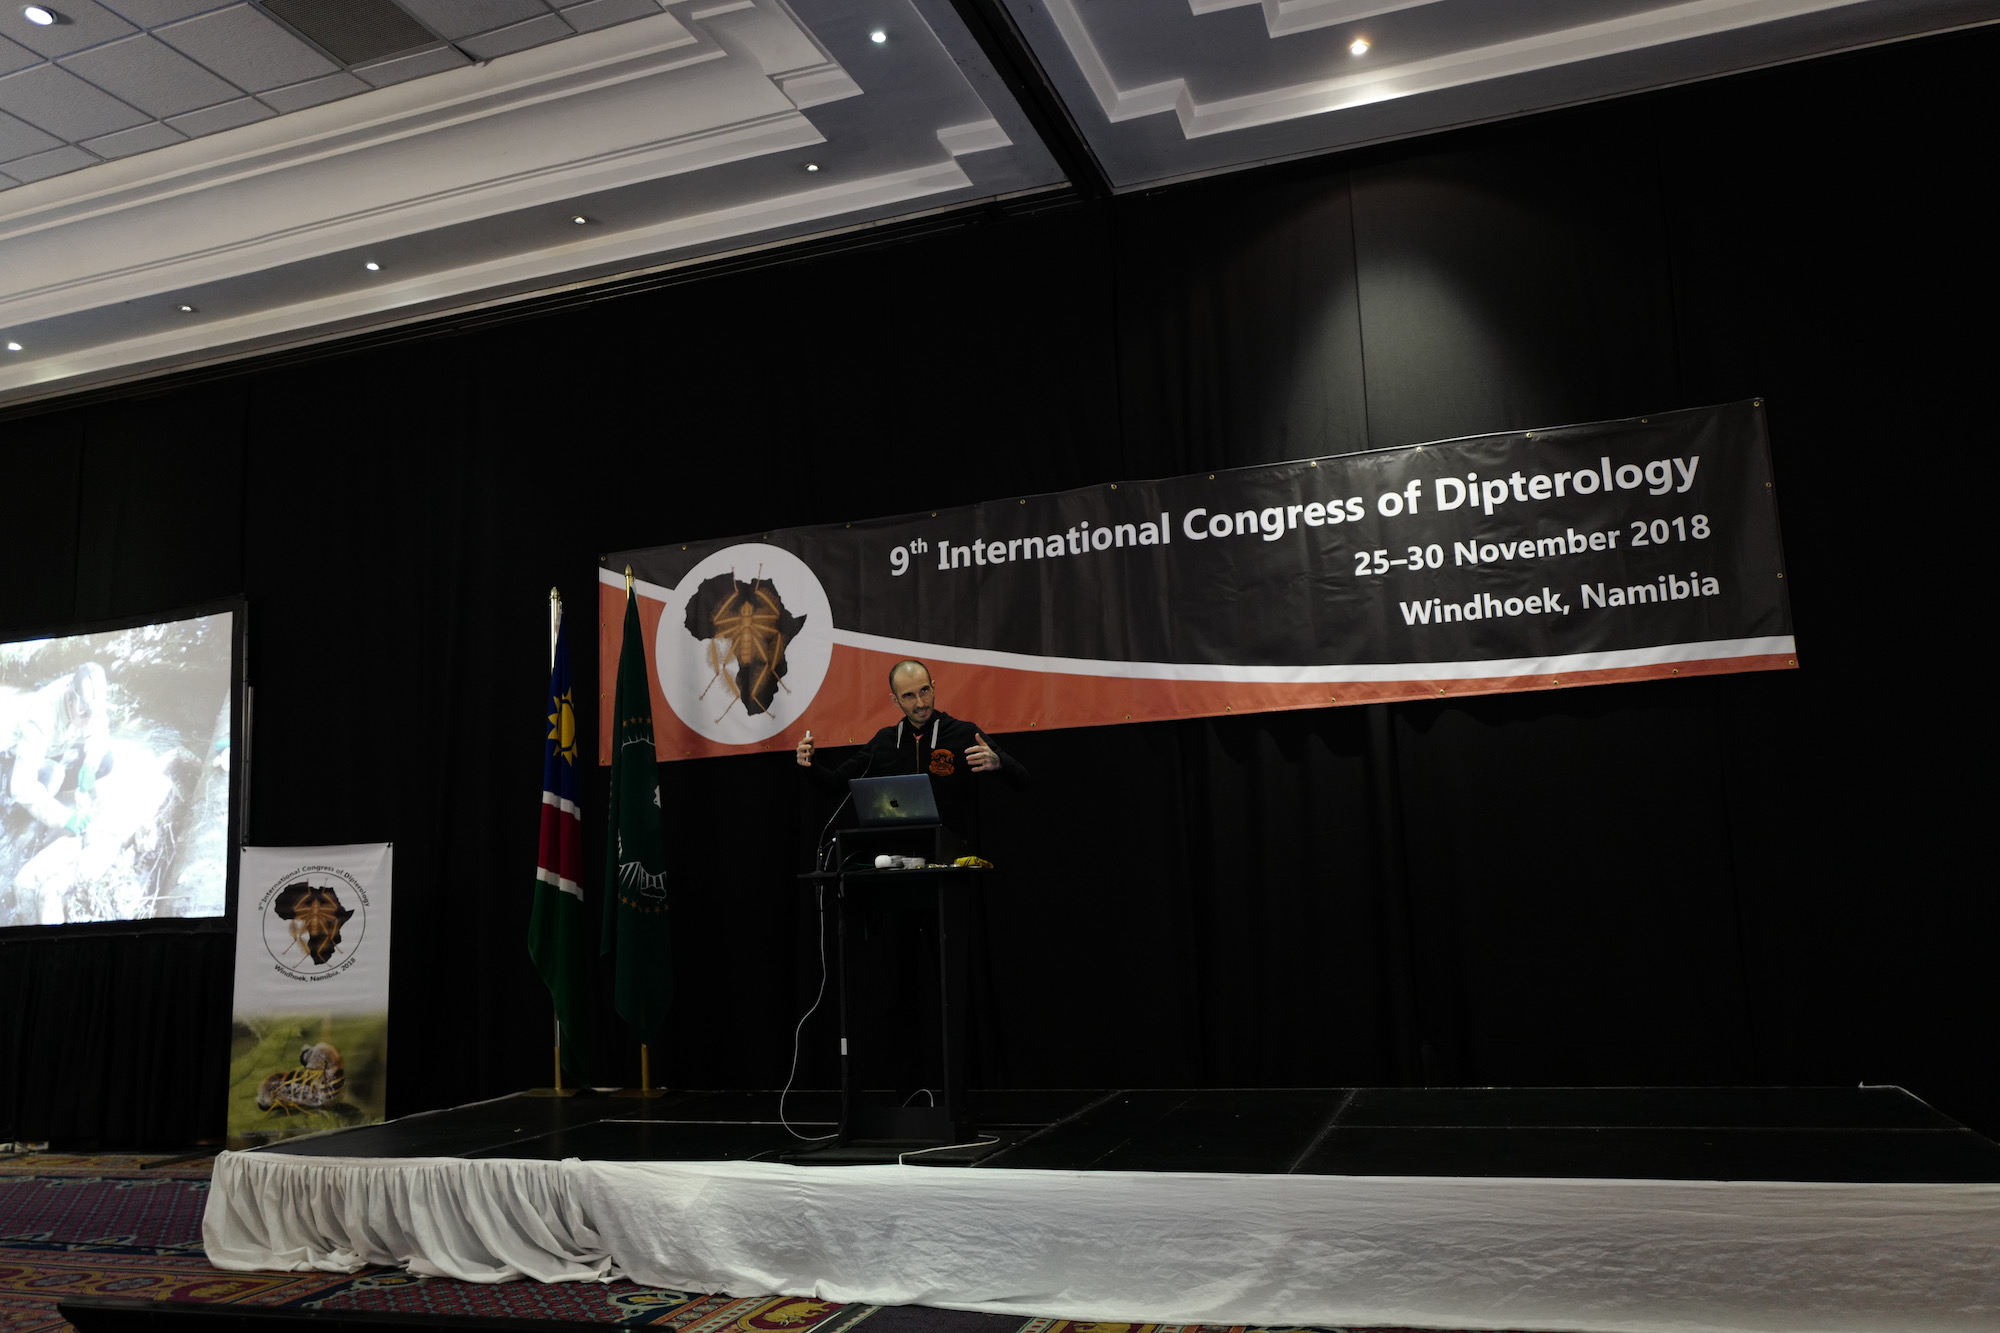 mark_benecke_ICD9_dipterology_world_congress_windhoeck_namibia - 155.jpg